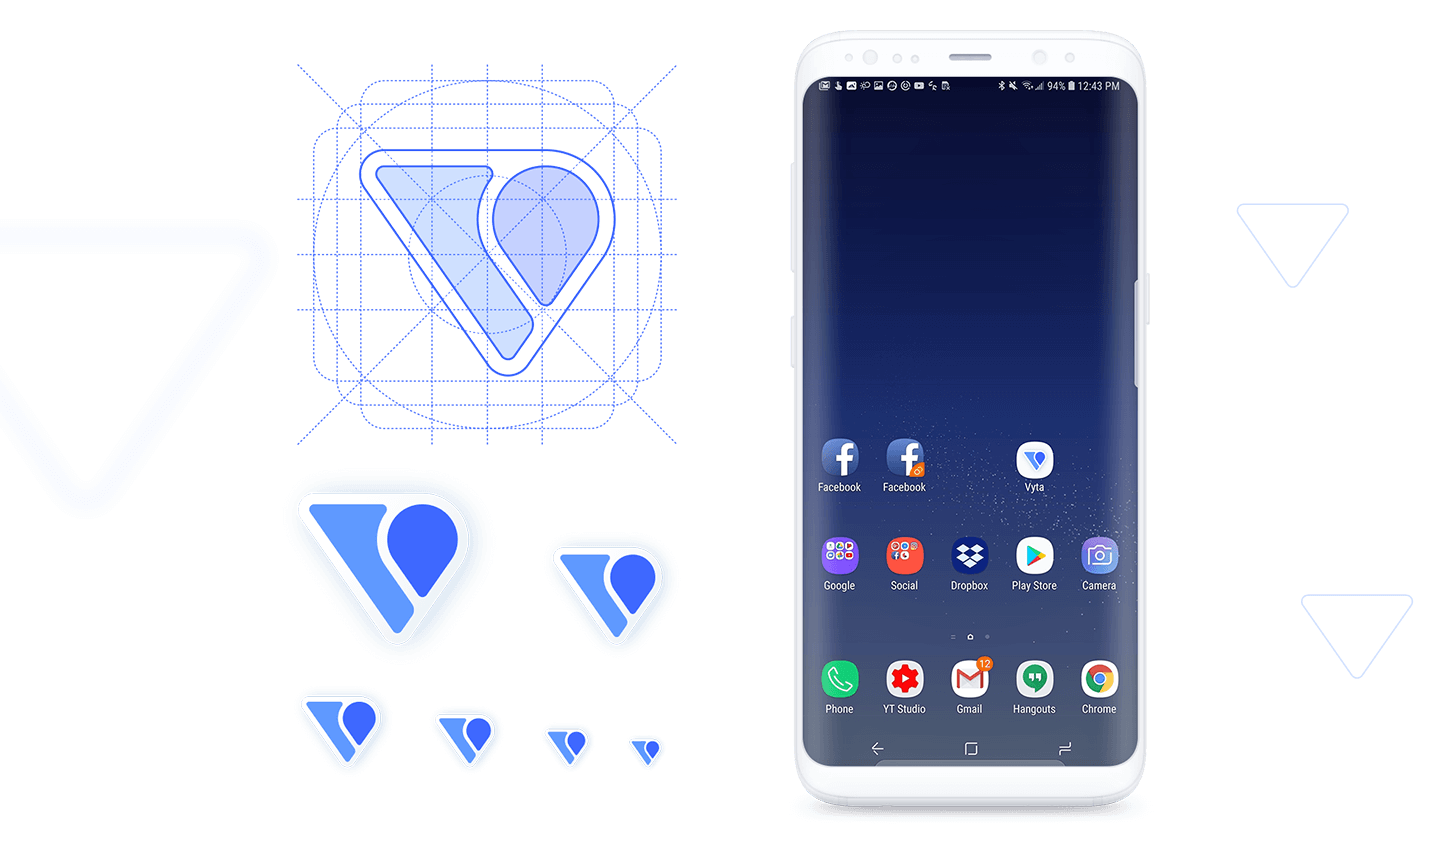 Vyta Android Application